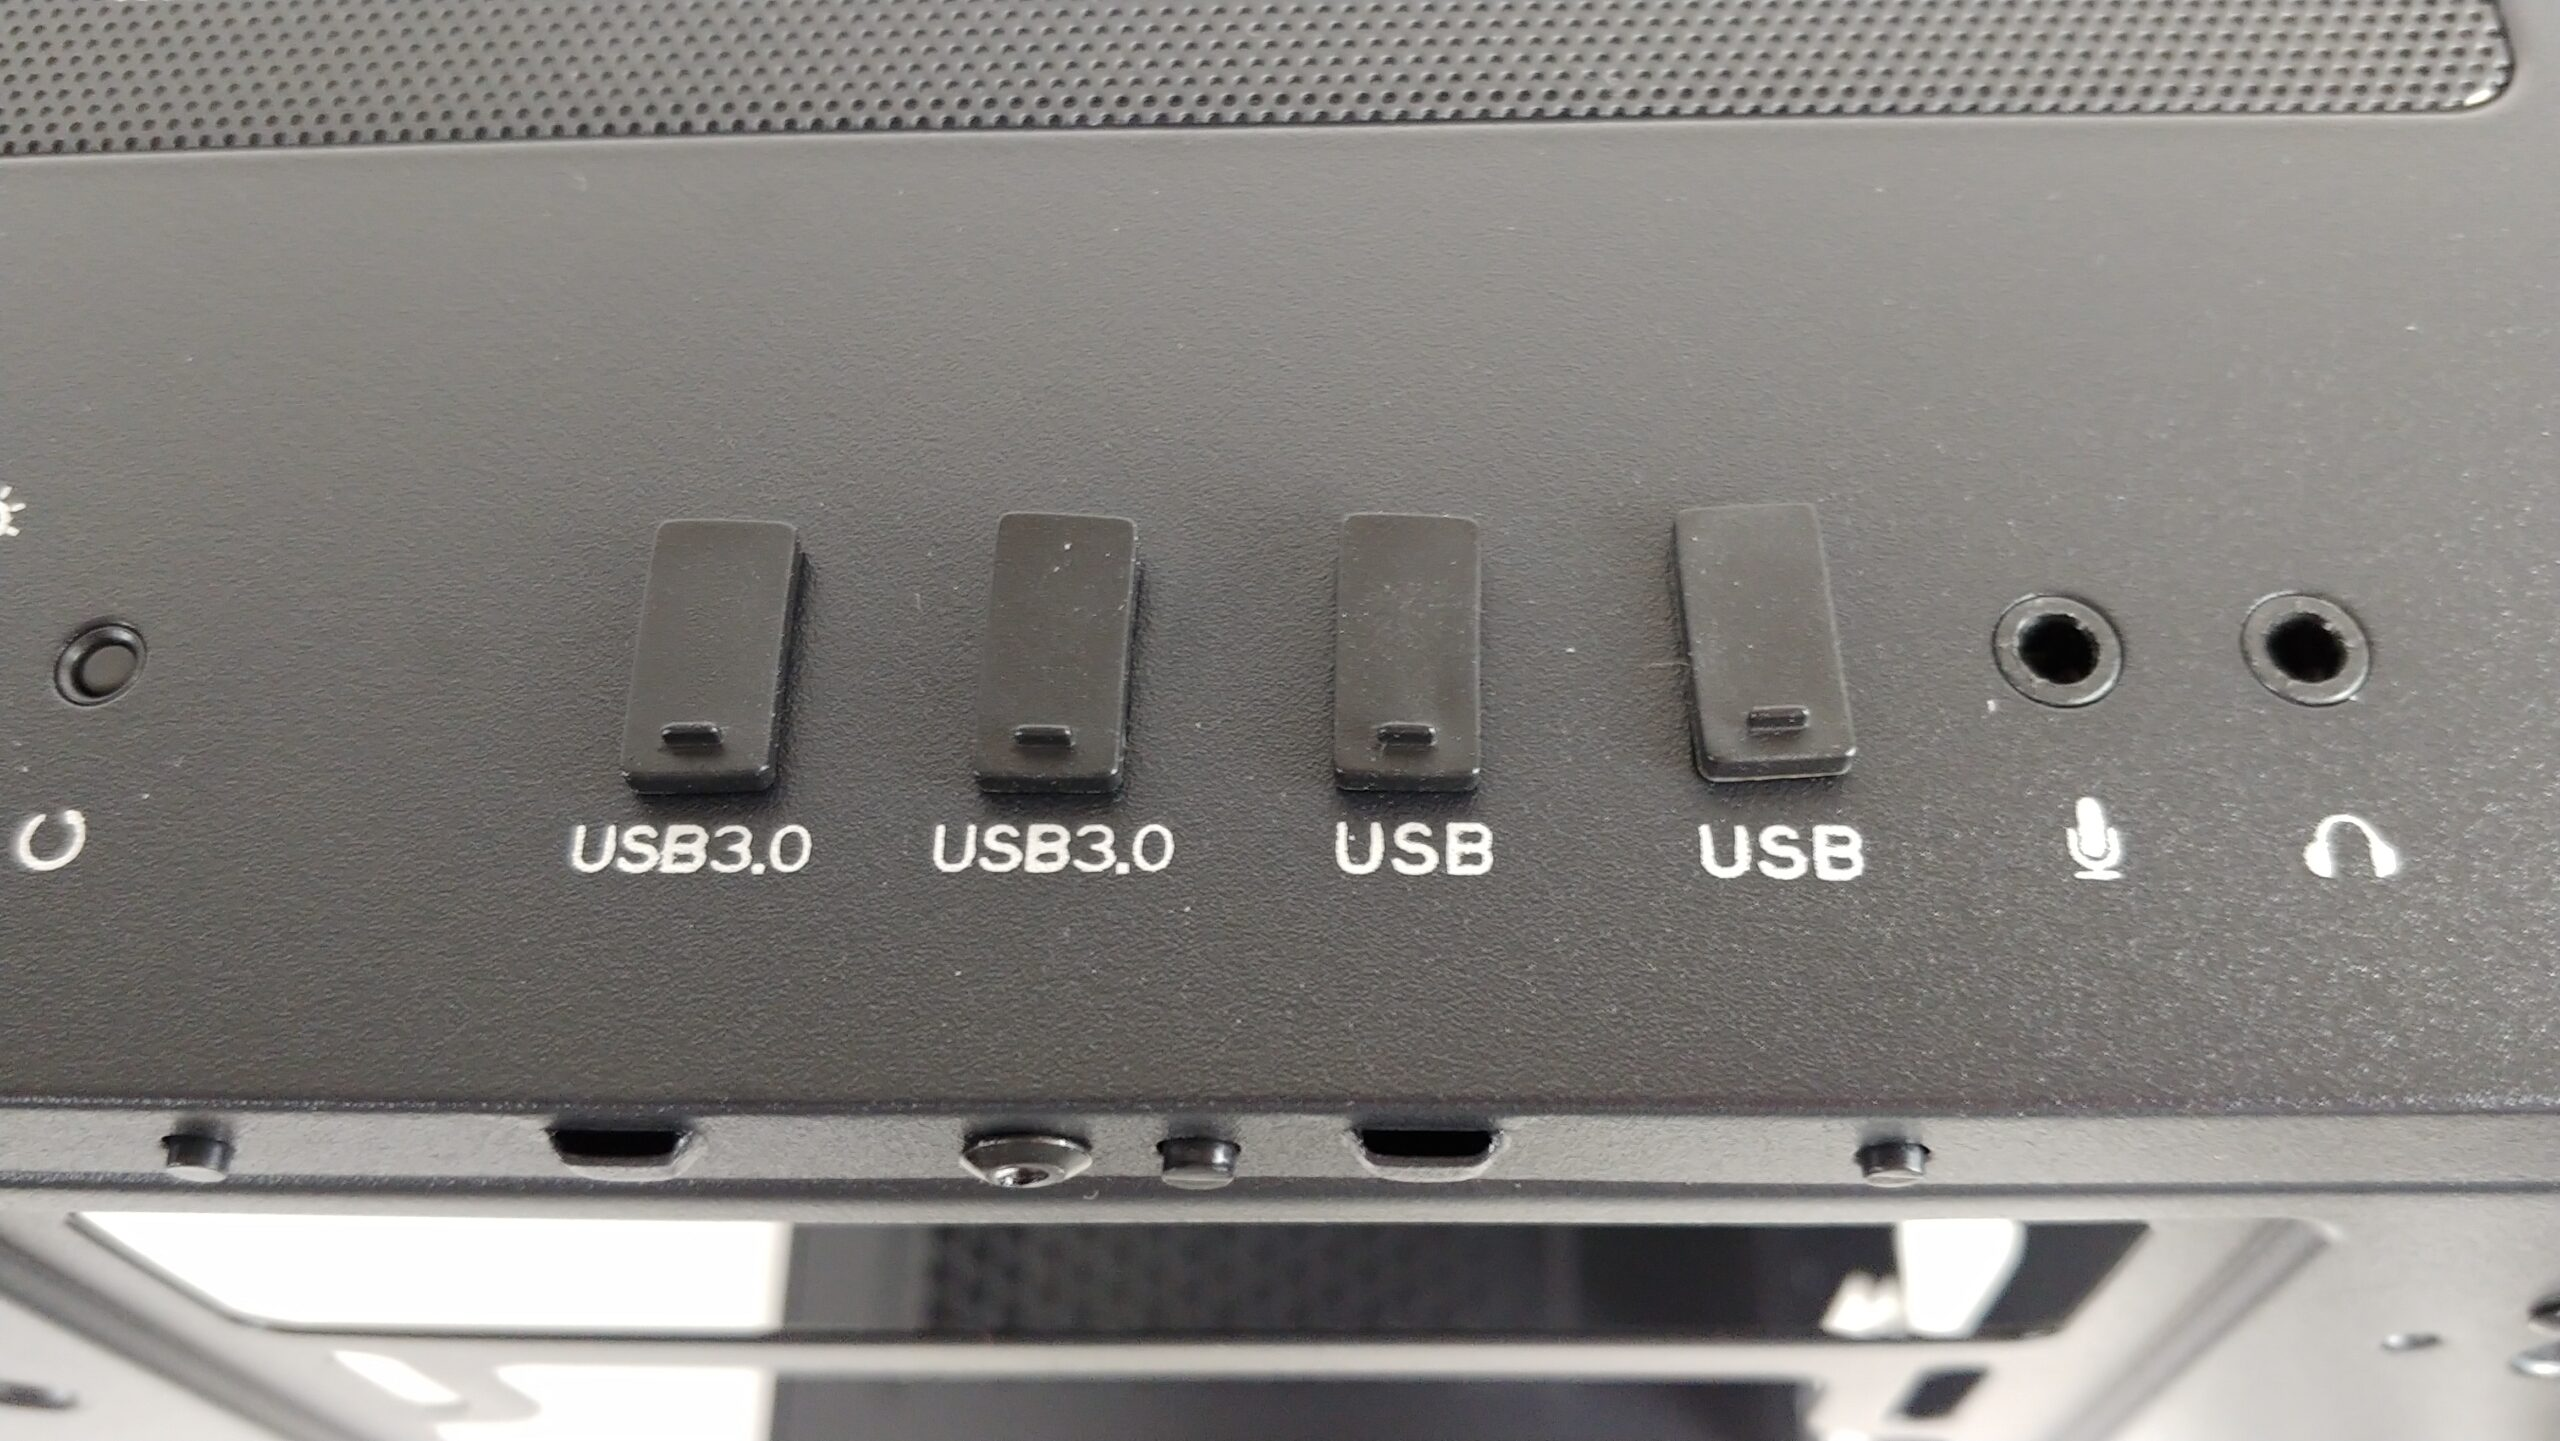 USB covers for FSP CMT260.